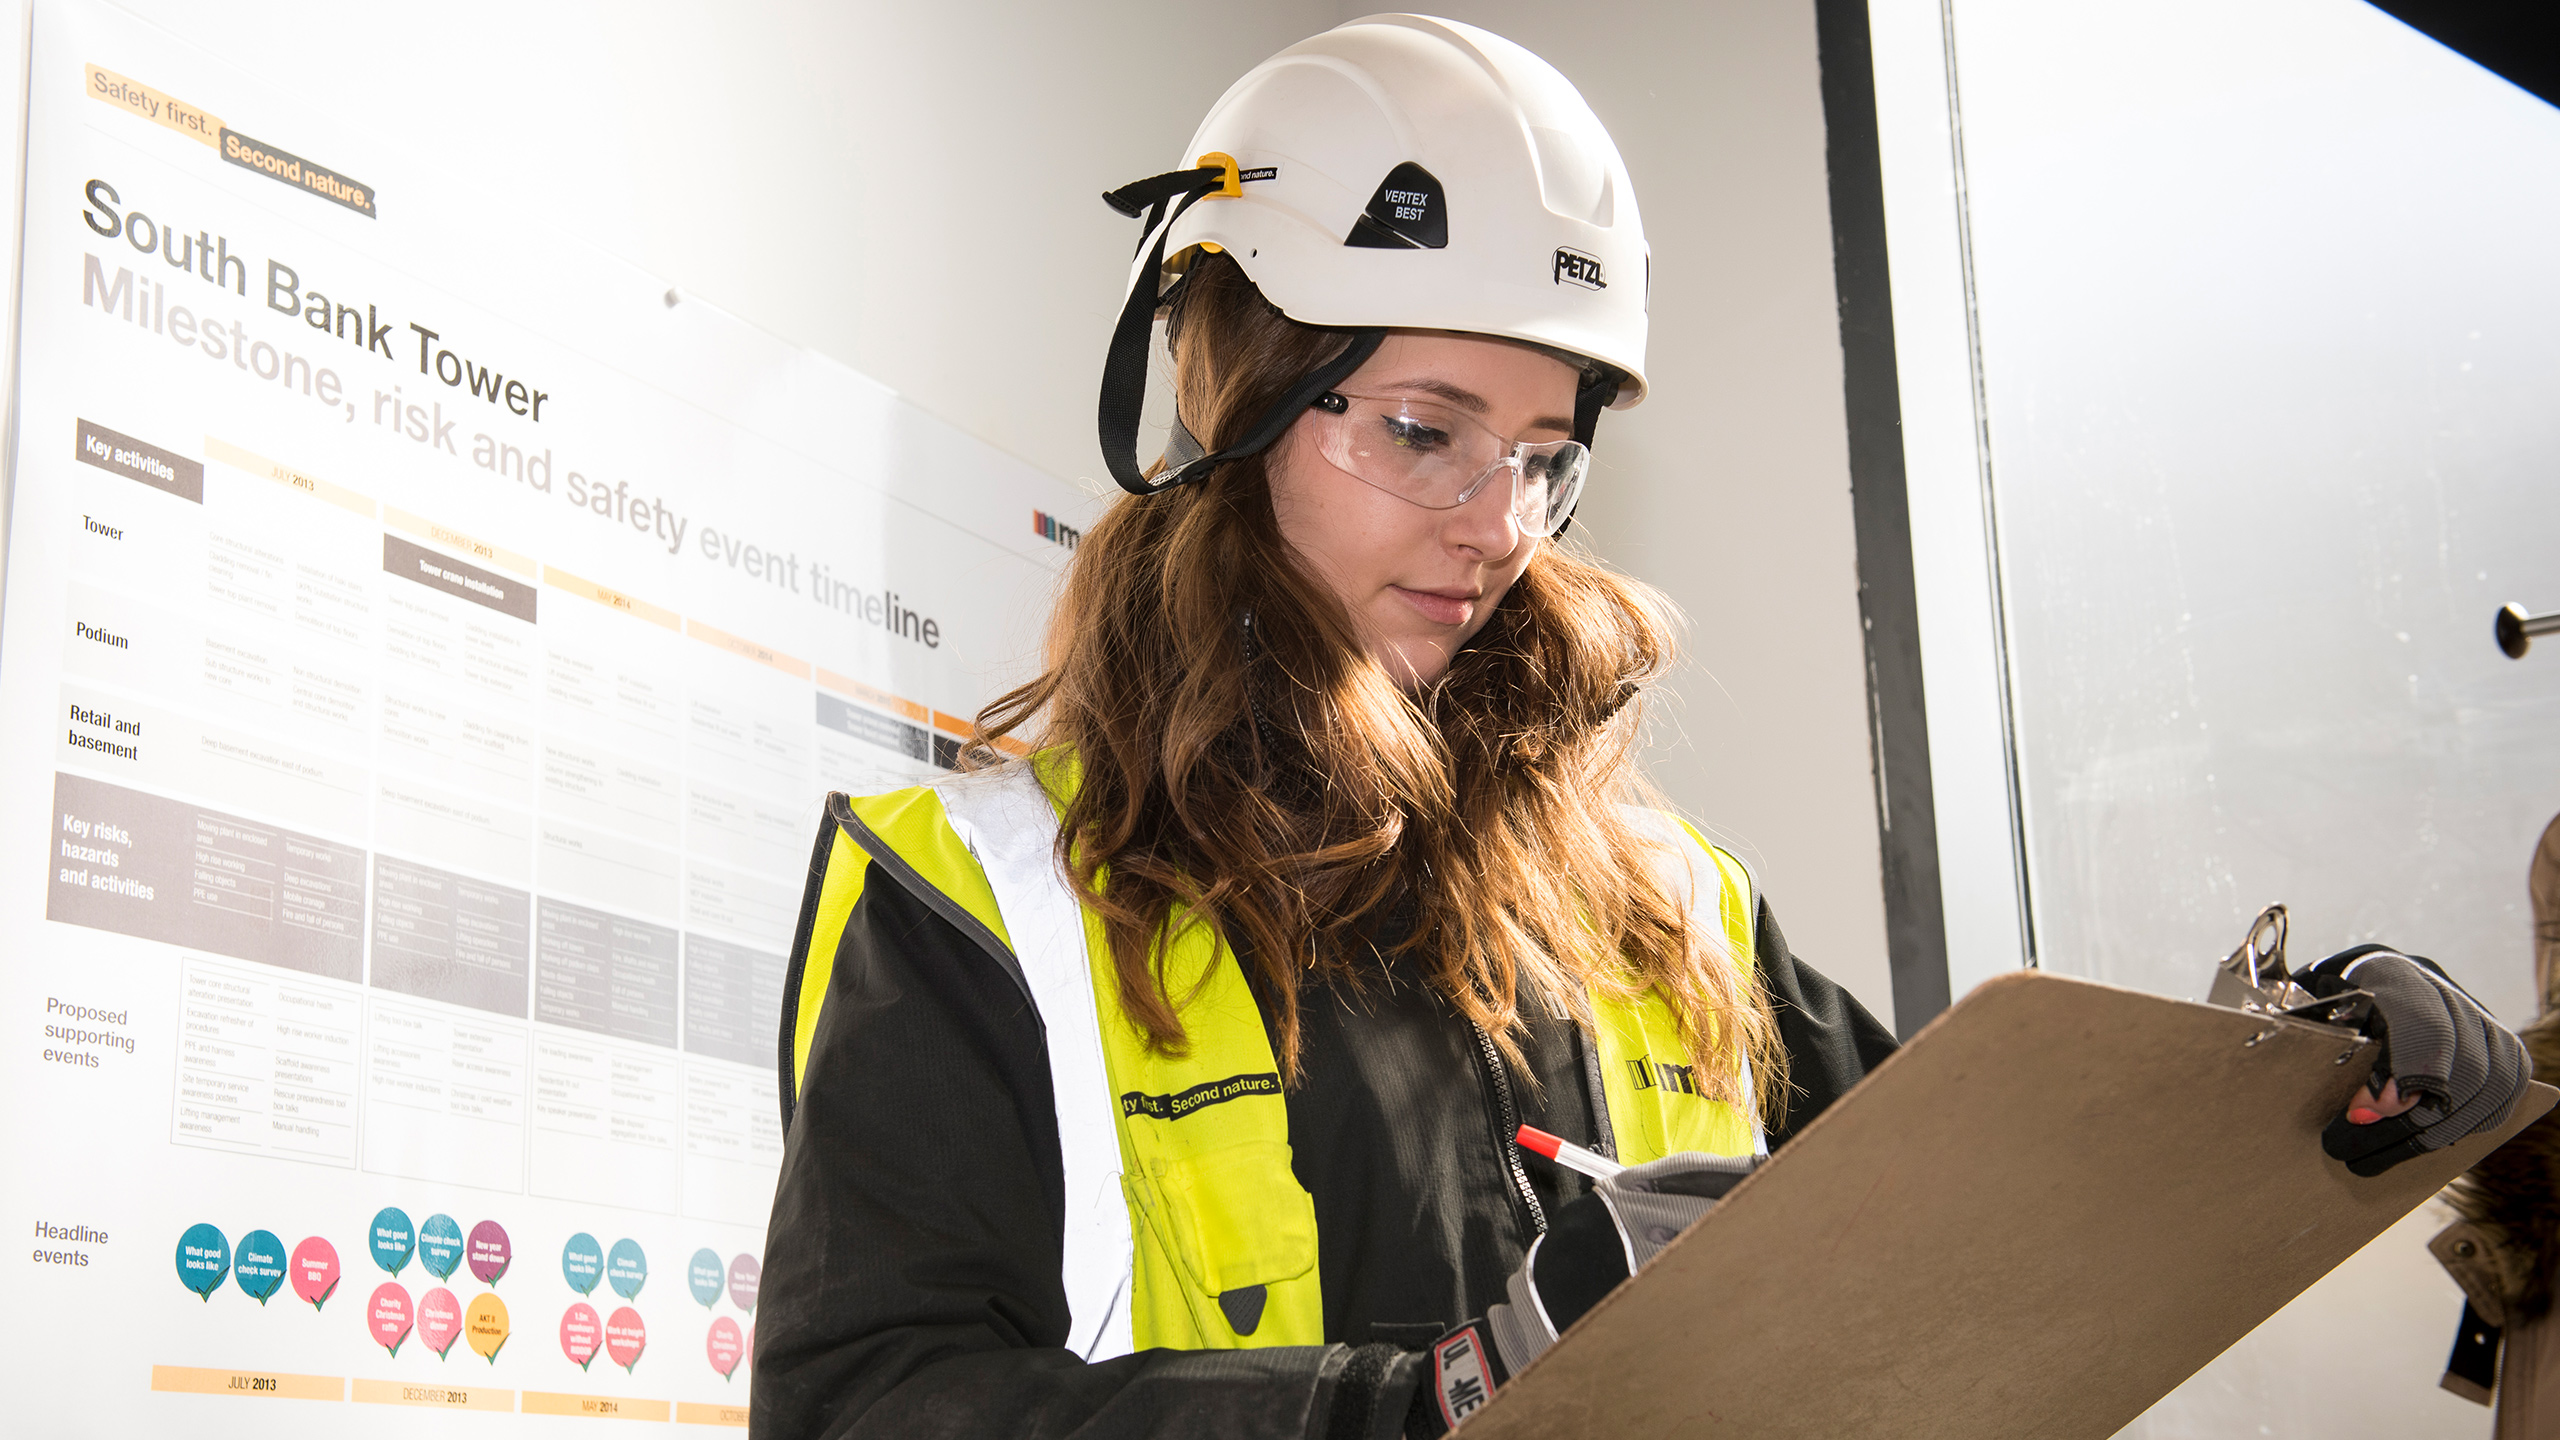 Student in hard hat with clipboard, working at the South Bank Tower, London